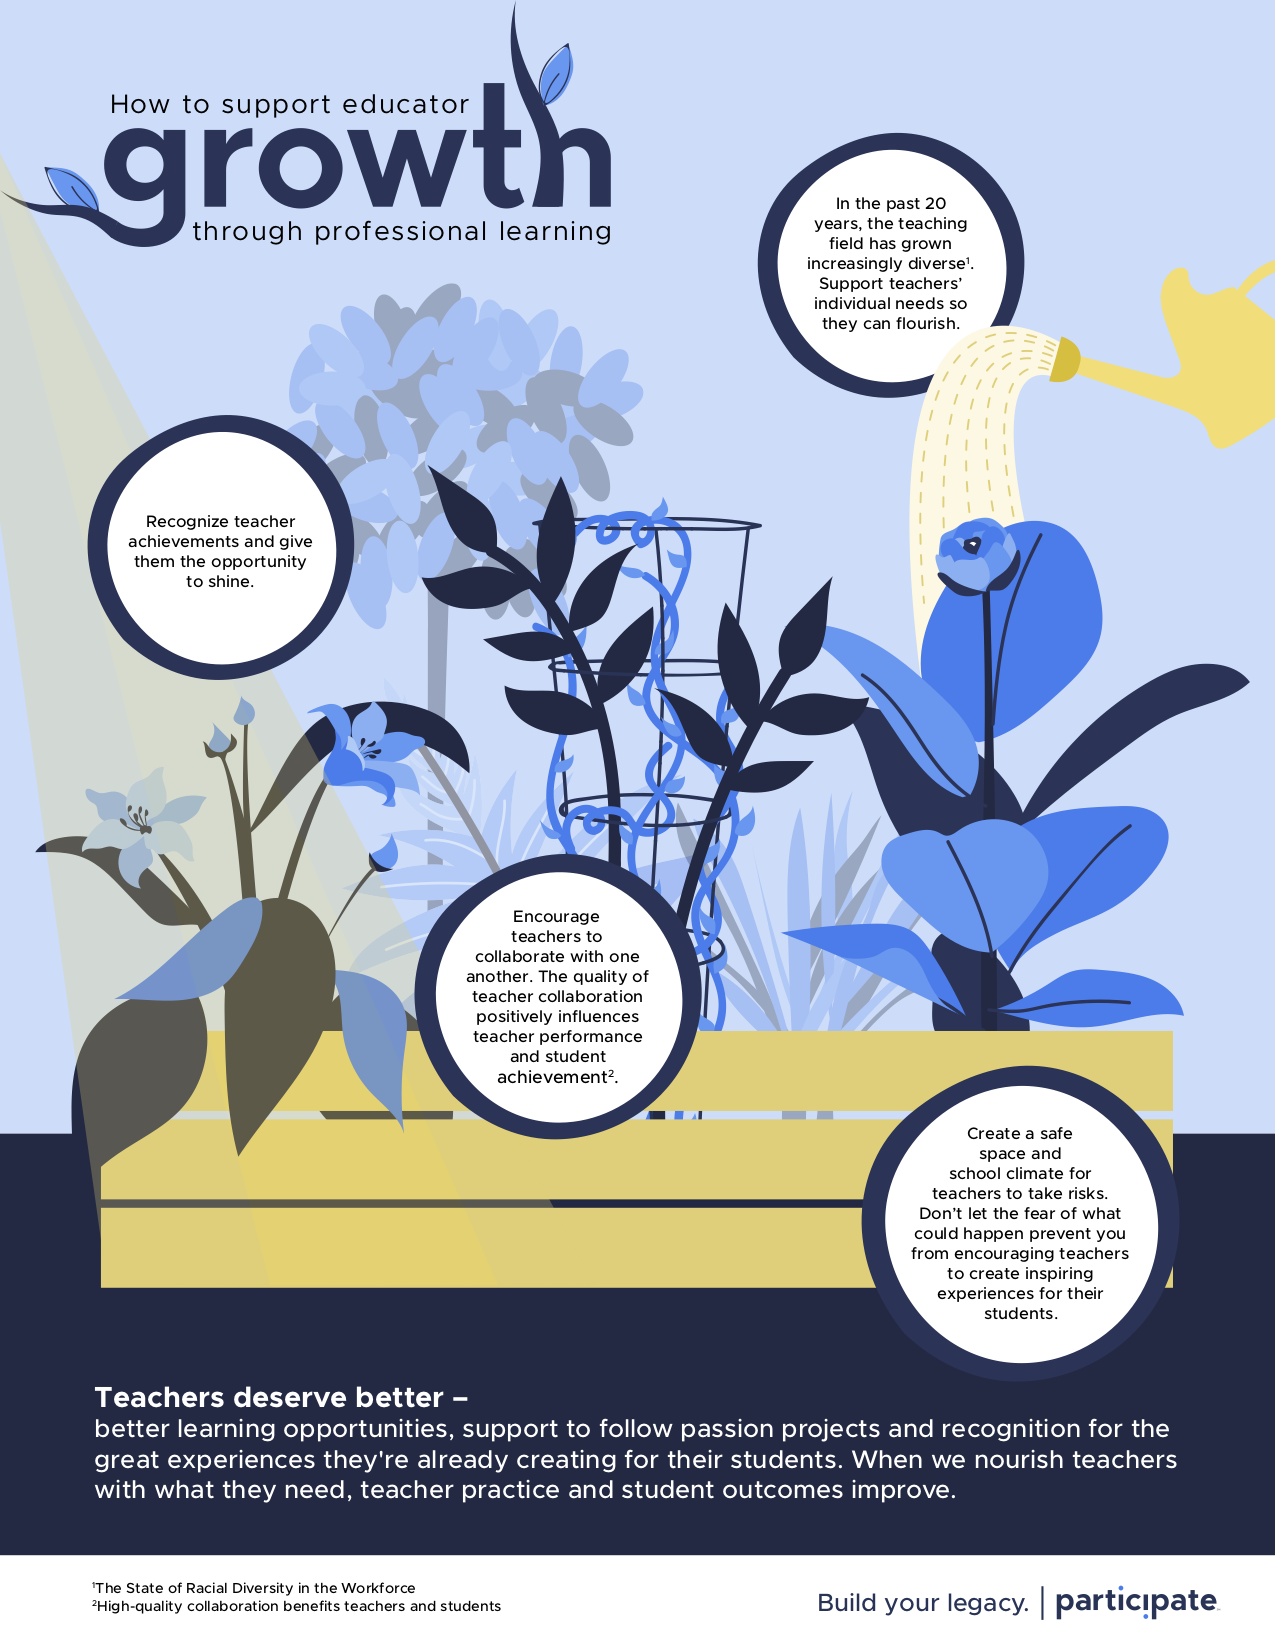 [Infographic] How to support educator growth